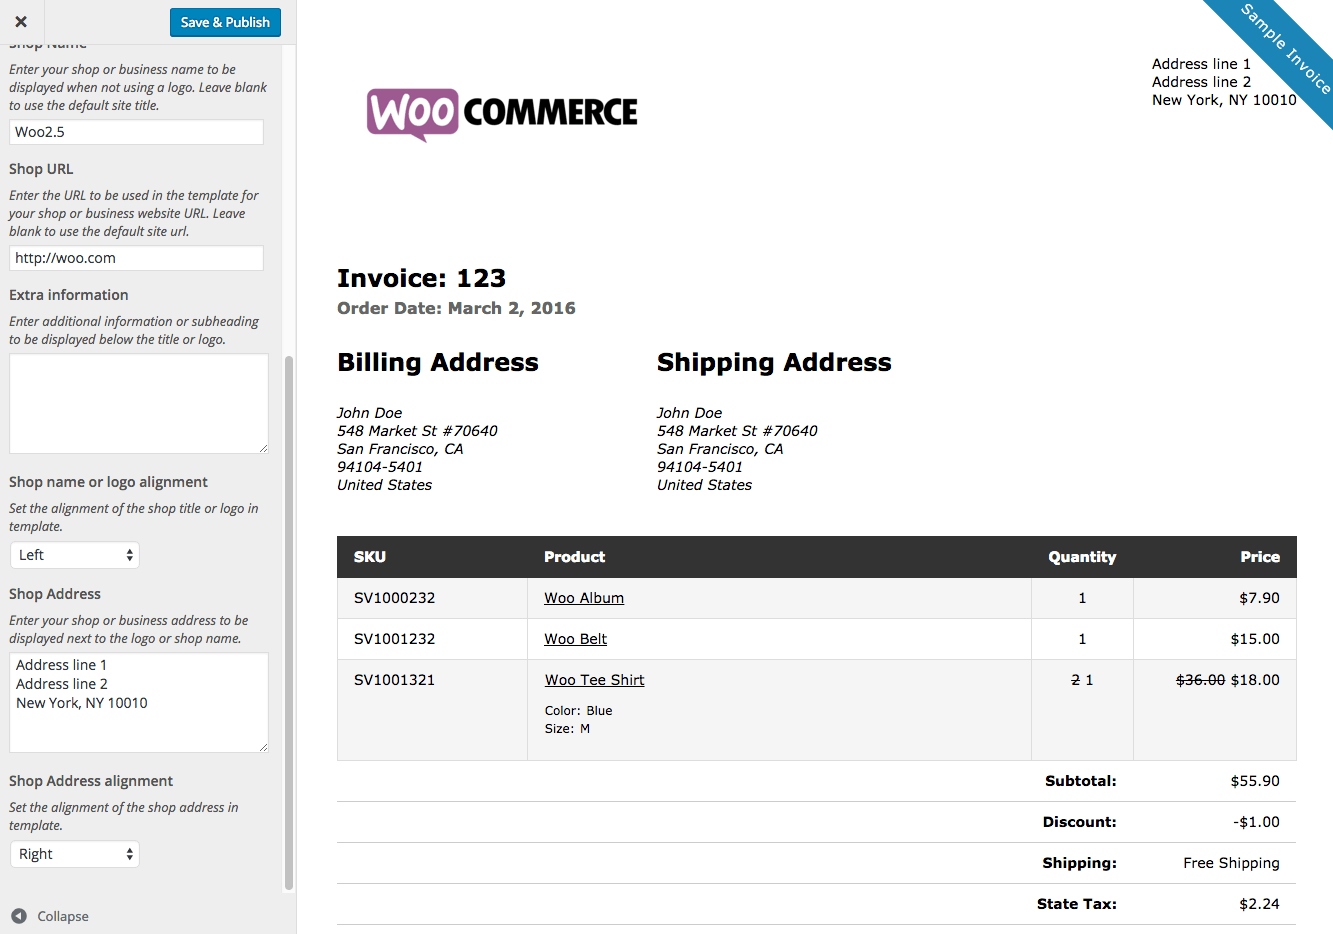 Ultrablogus  Winning Woocommerce Print Invoices Amp Packing Lists  Woocommerce Docs With Magnificent Woocommerce Print Invoices  Packing Lists Customizer With Divine Enterprise Invoice Also Free Invoice Template Microsoft Word In Addition Estimate Invoice Template And Invoice Template Psd As Well As Online Invoices Free Additionally Invoice To Cash From Docswoocommercecom With Ultrablogus  Magnificent Woocommerce Print Invoices Amp Packing Lists  Woocommerce Docs With Divine Woocommerce Print Invoices  Packing Lists Customizer And Winning Enterprise Invoice Also Free Invoice Template Microsoft Word In Addition Estimate Invoice Template From Docswoocommercecom